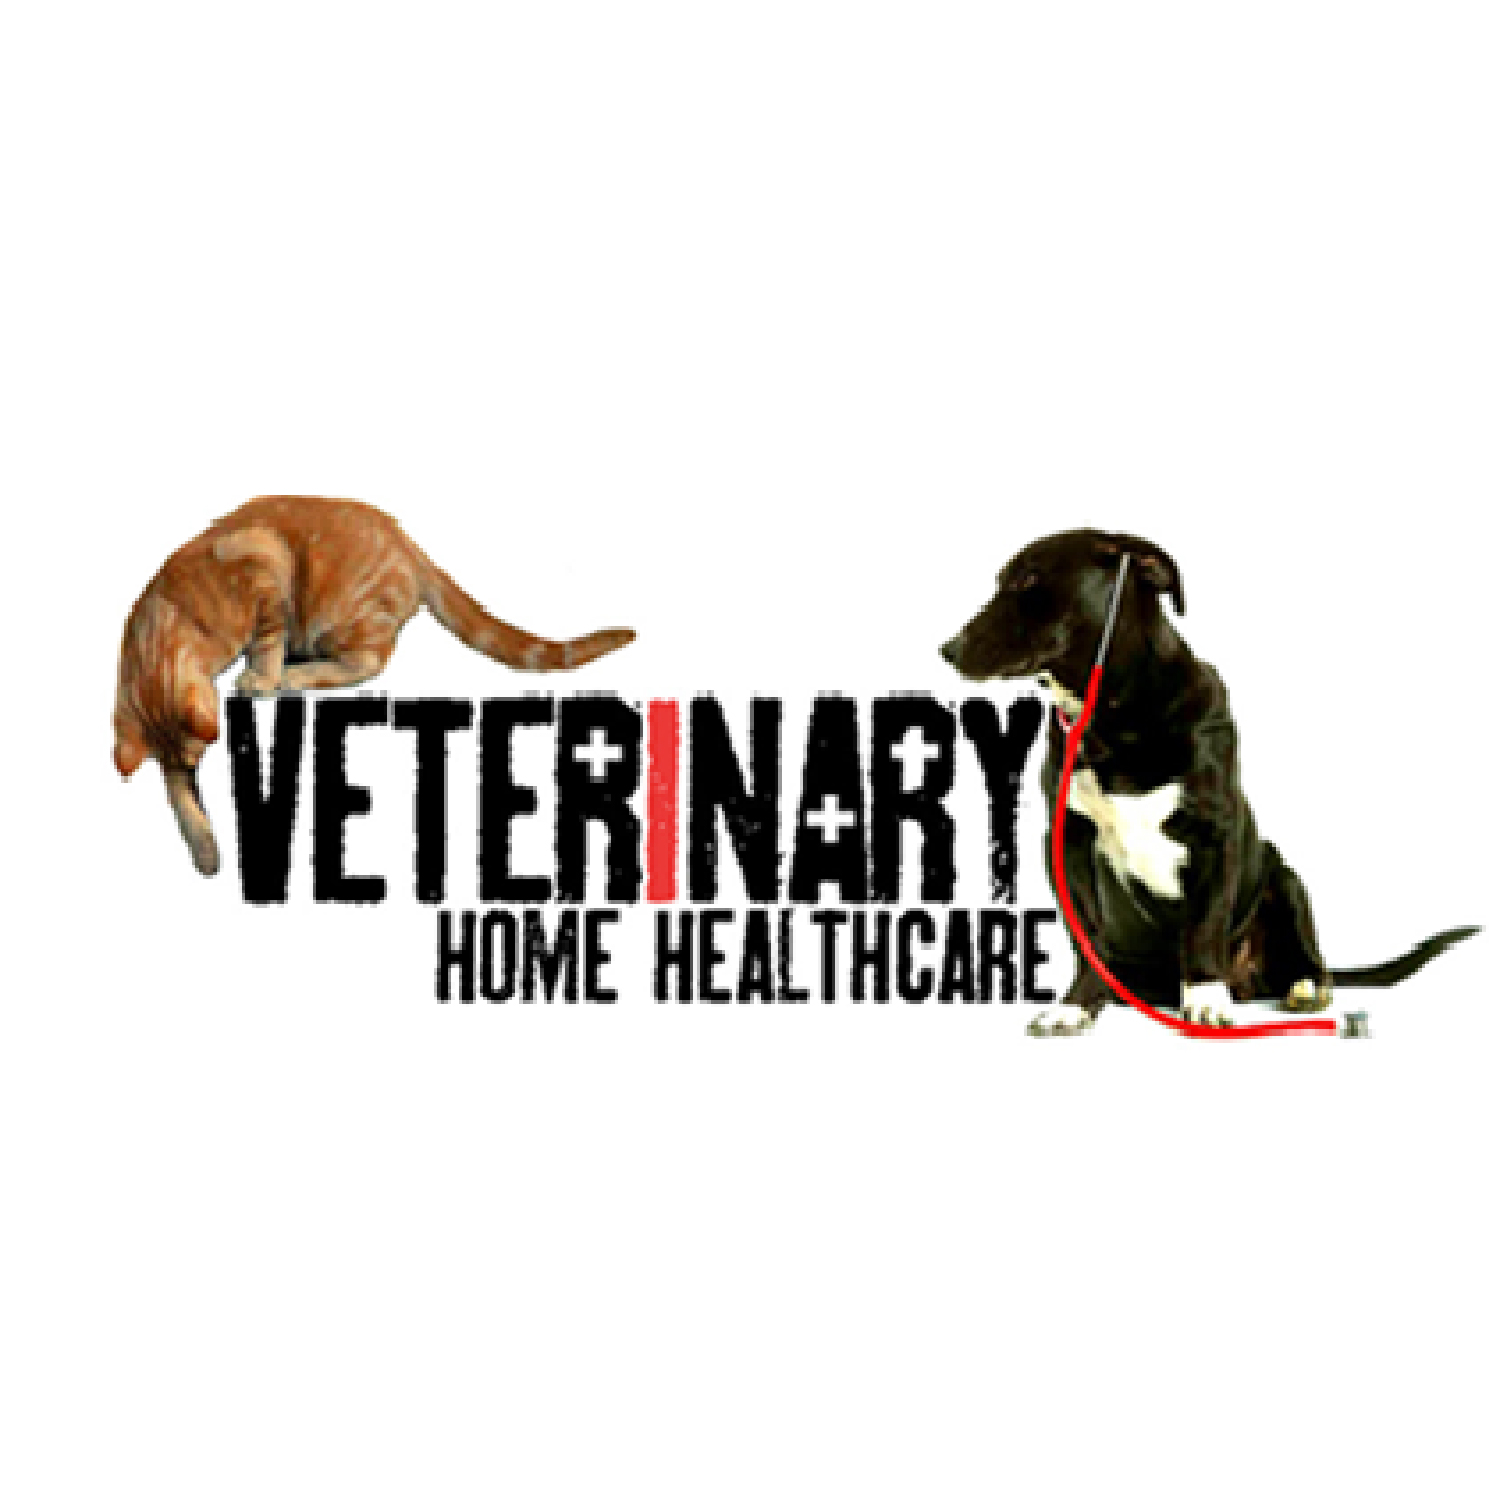 veterinary home healthcare.jpg